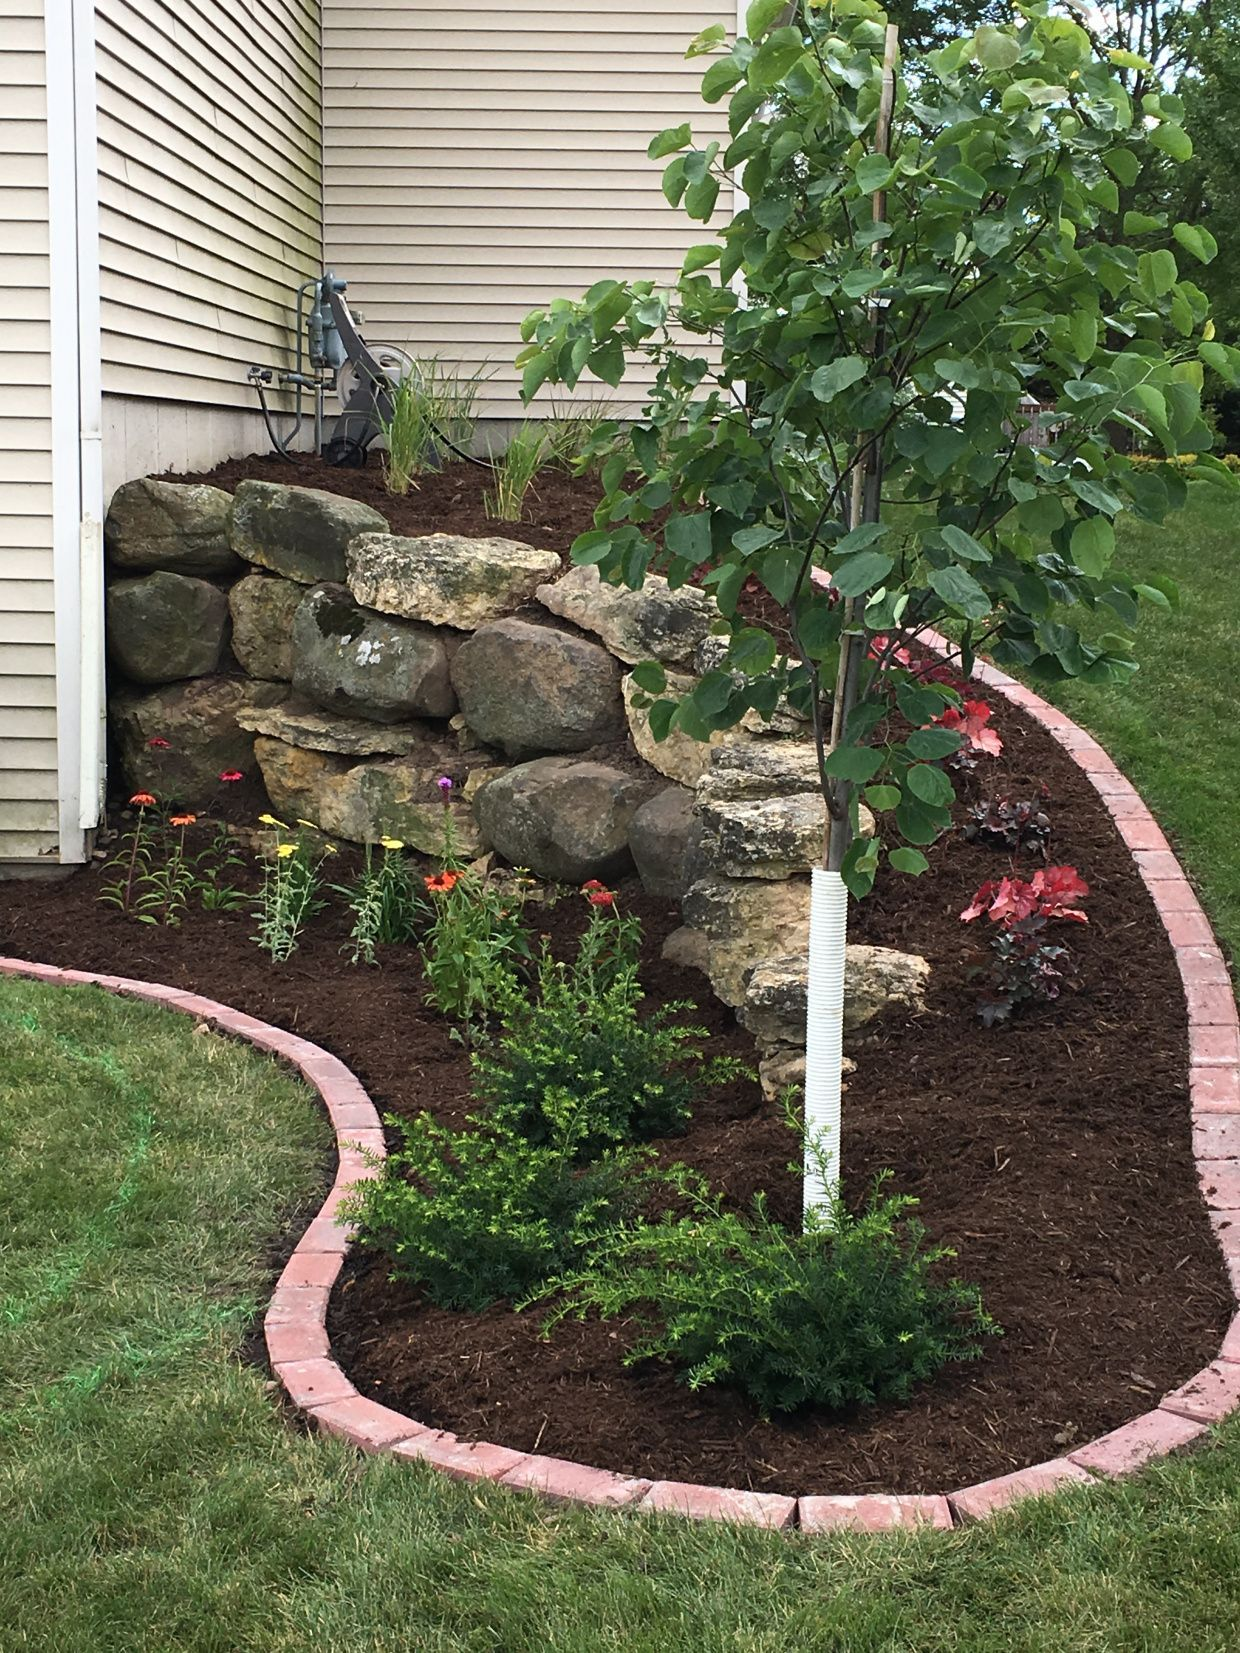 Backyard Landscaping Project Including Removing Rock Replanting Laying Mulch And Laying A Brick Landscaping With Rocks Landscape Projects Landscape Design